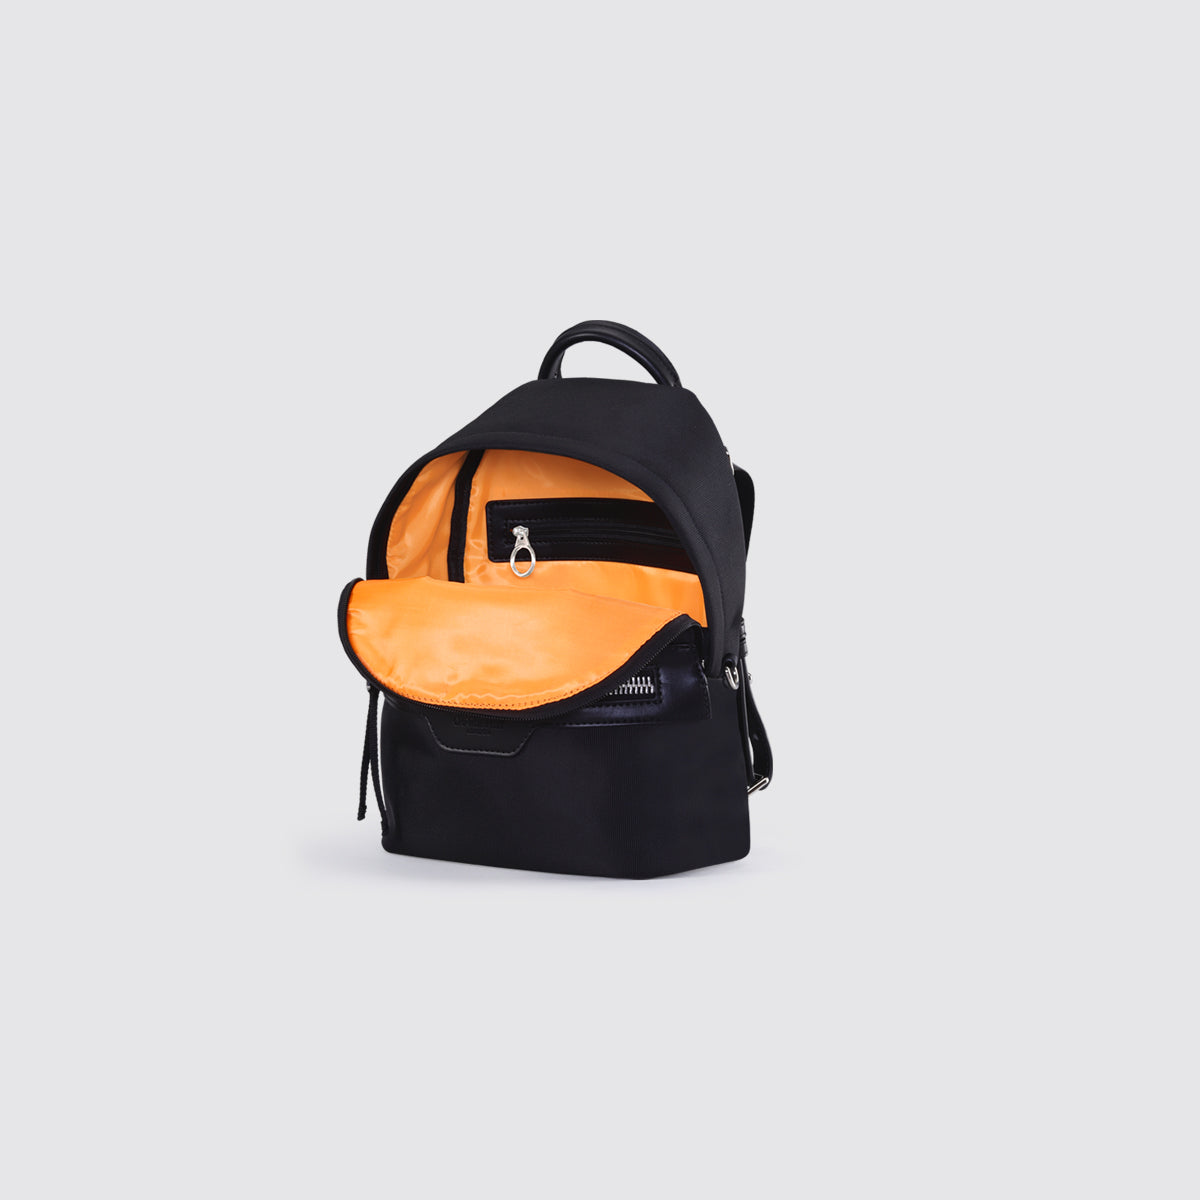 Kiko Convertible Backpack